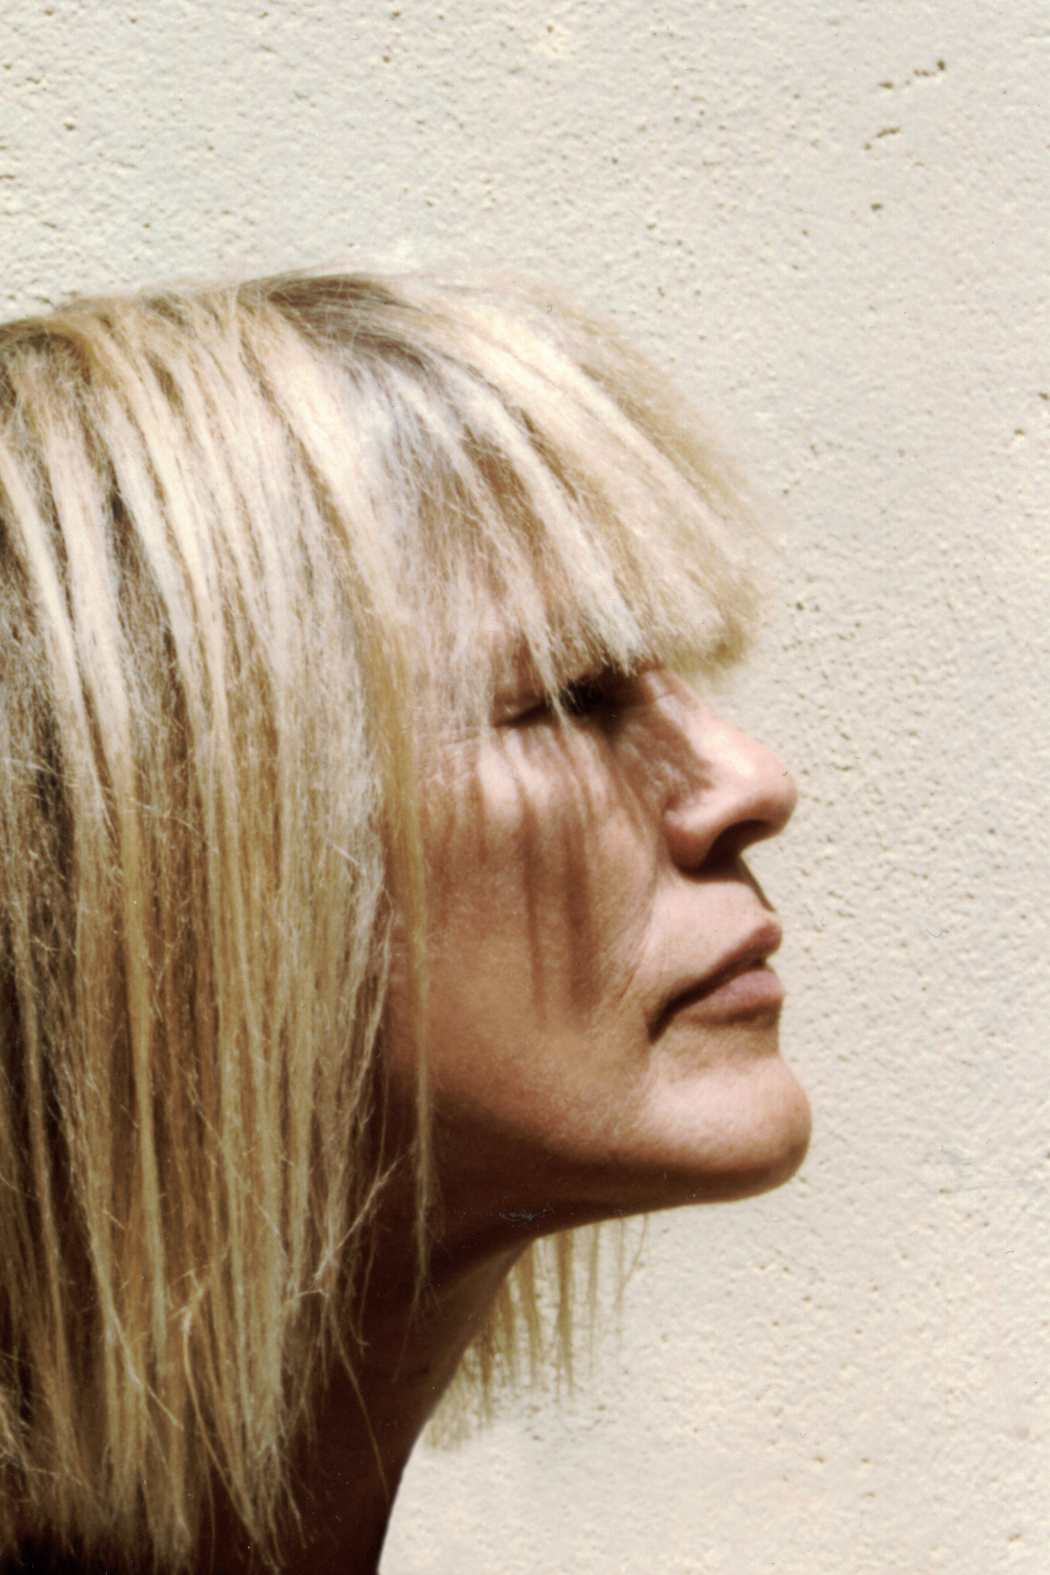 Caption: Carla Bley, Credit: D.D. Rider